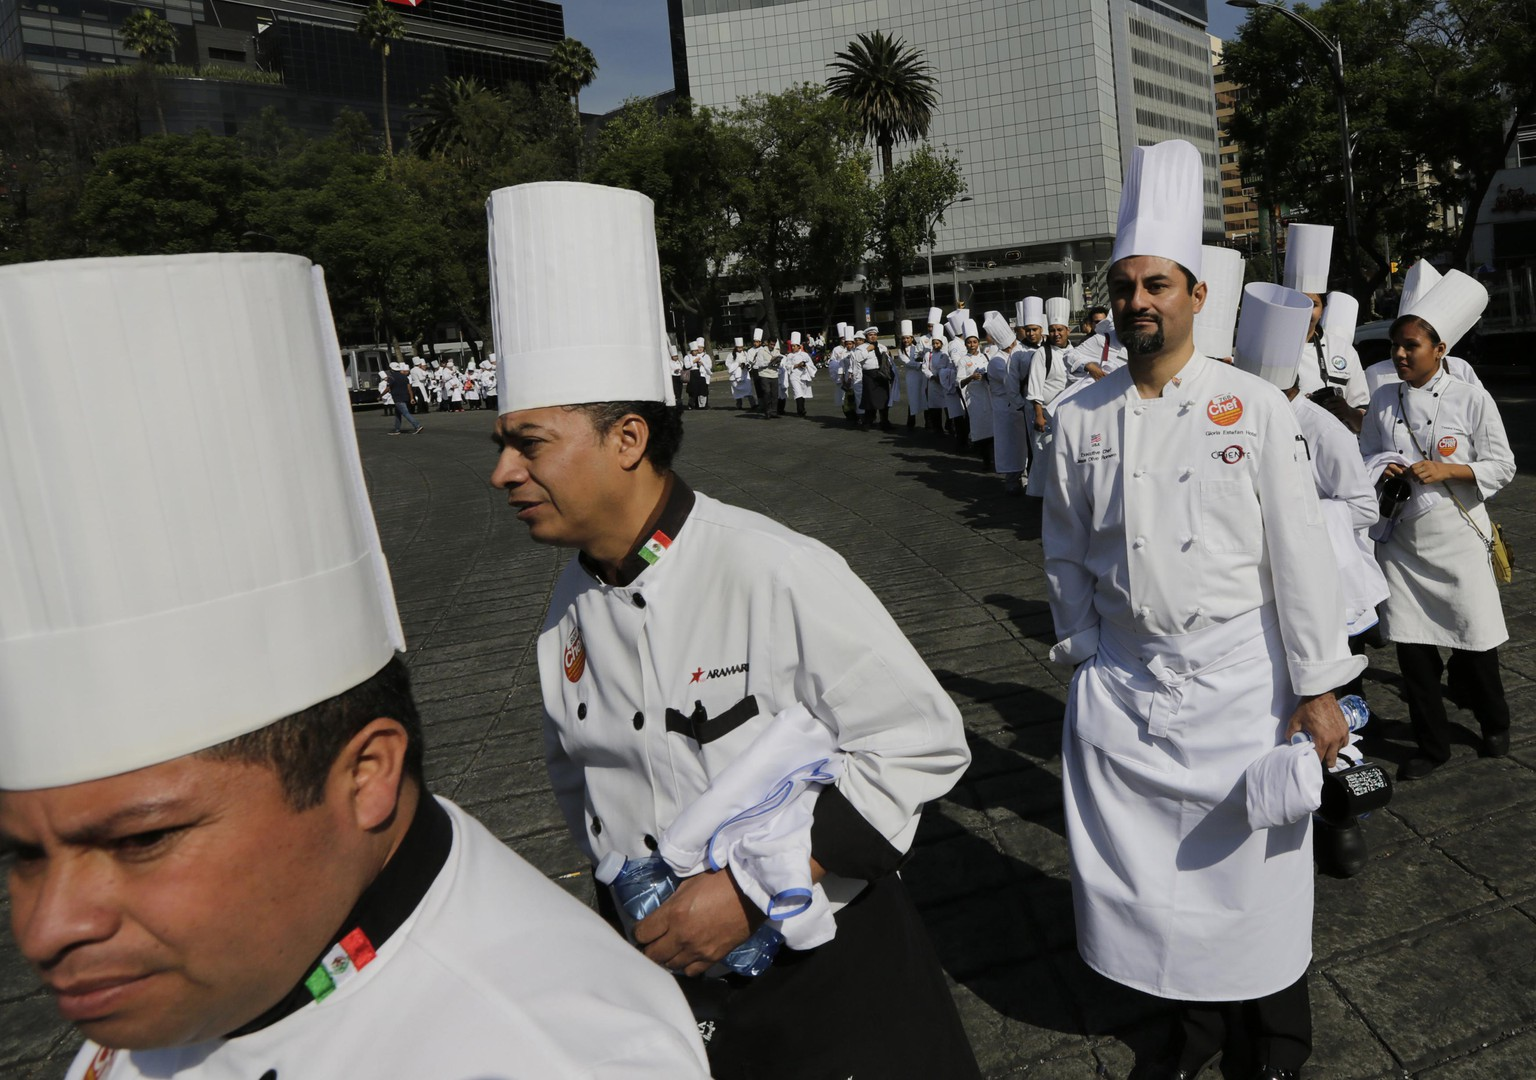 Chefs arrive to take part in a Guinness World Record-breaking gathering of 3,634 chefs and sommeliers at the Angel of Independence monument in Mexico City, May 17, 2014. The Mexico City tourism board said a Guinness World Records official confirmed the event had set a new world record of the largest number of chefs and sommeliers to gather in one place.  REUTERS/Henry Romero (MEXICO - Tags: SOCIETY)